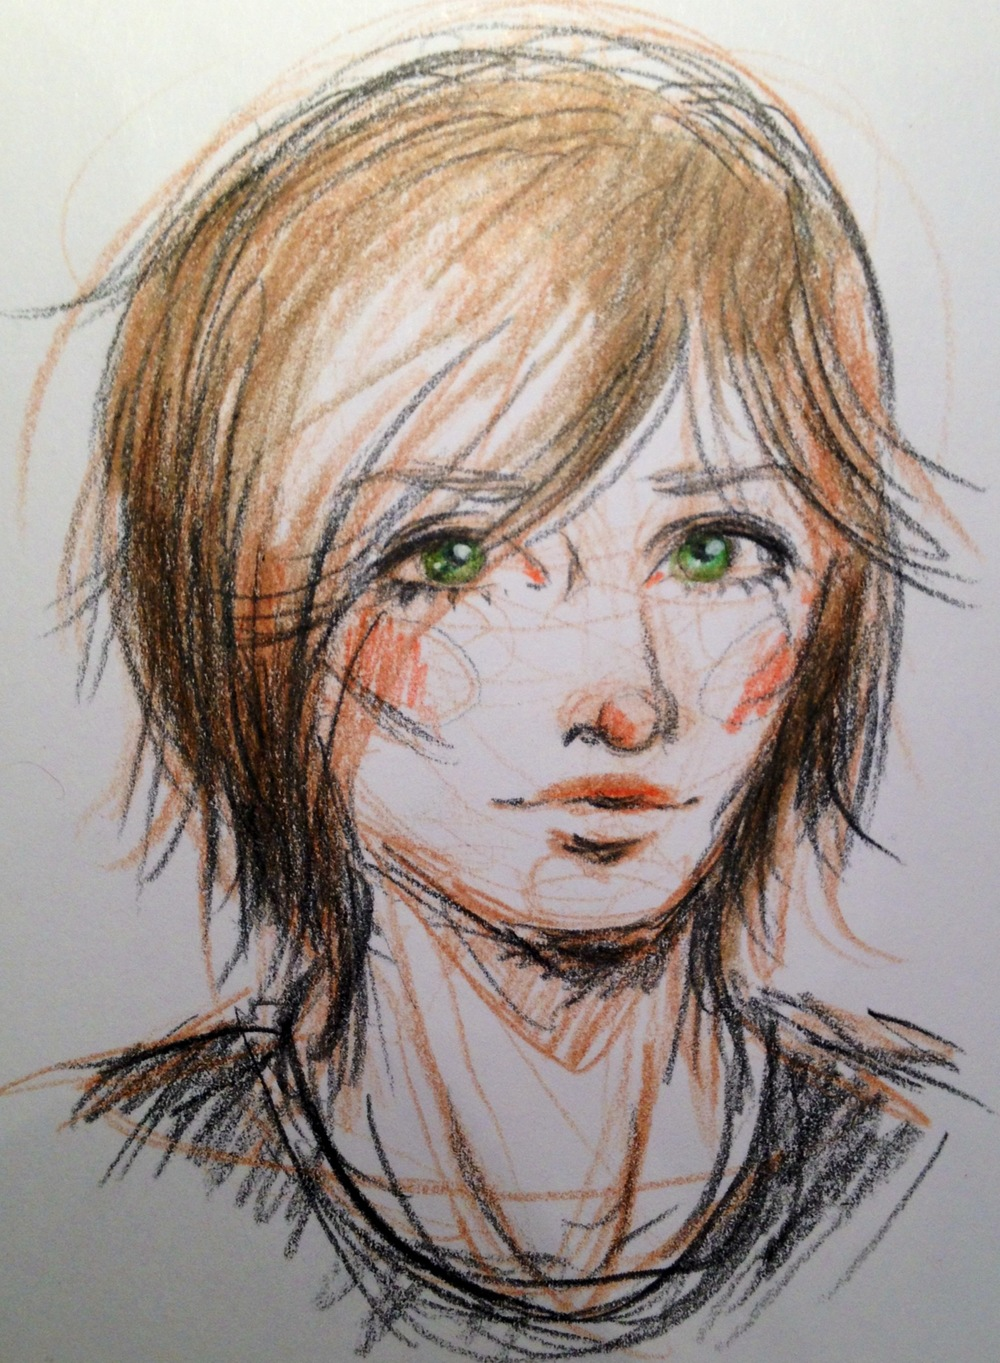 coloured pencil sketch 1.jpg